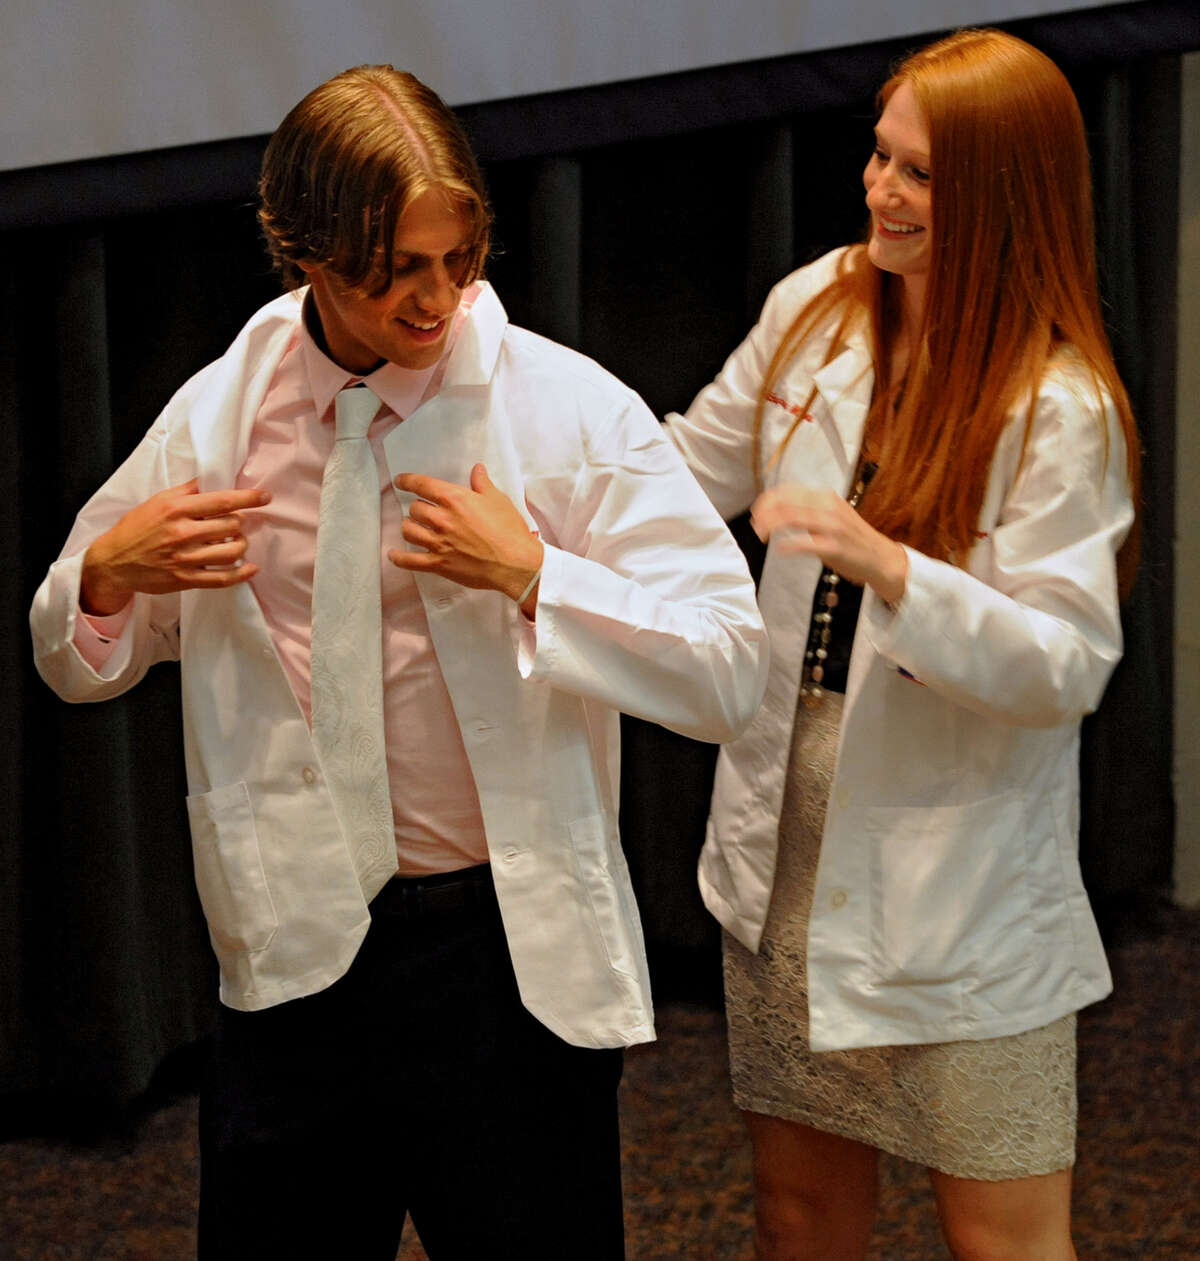 Albany Medical College student Stevan Pupovac of Saratoga receives his first white coat from second year medical student Katie Medford of Clifton Park Tuesday, Aug. 7, 2012 in Albany, N.Y. Albany Medical College?s first-year medical students are initiated into the medical community by receiving their first white medical coat and by reciting the Hippocratic Oath. (Lori Van Buren / Times Union)